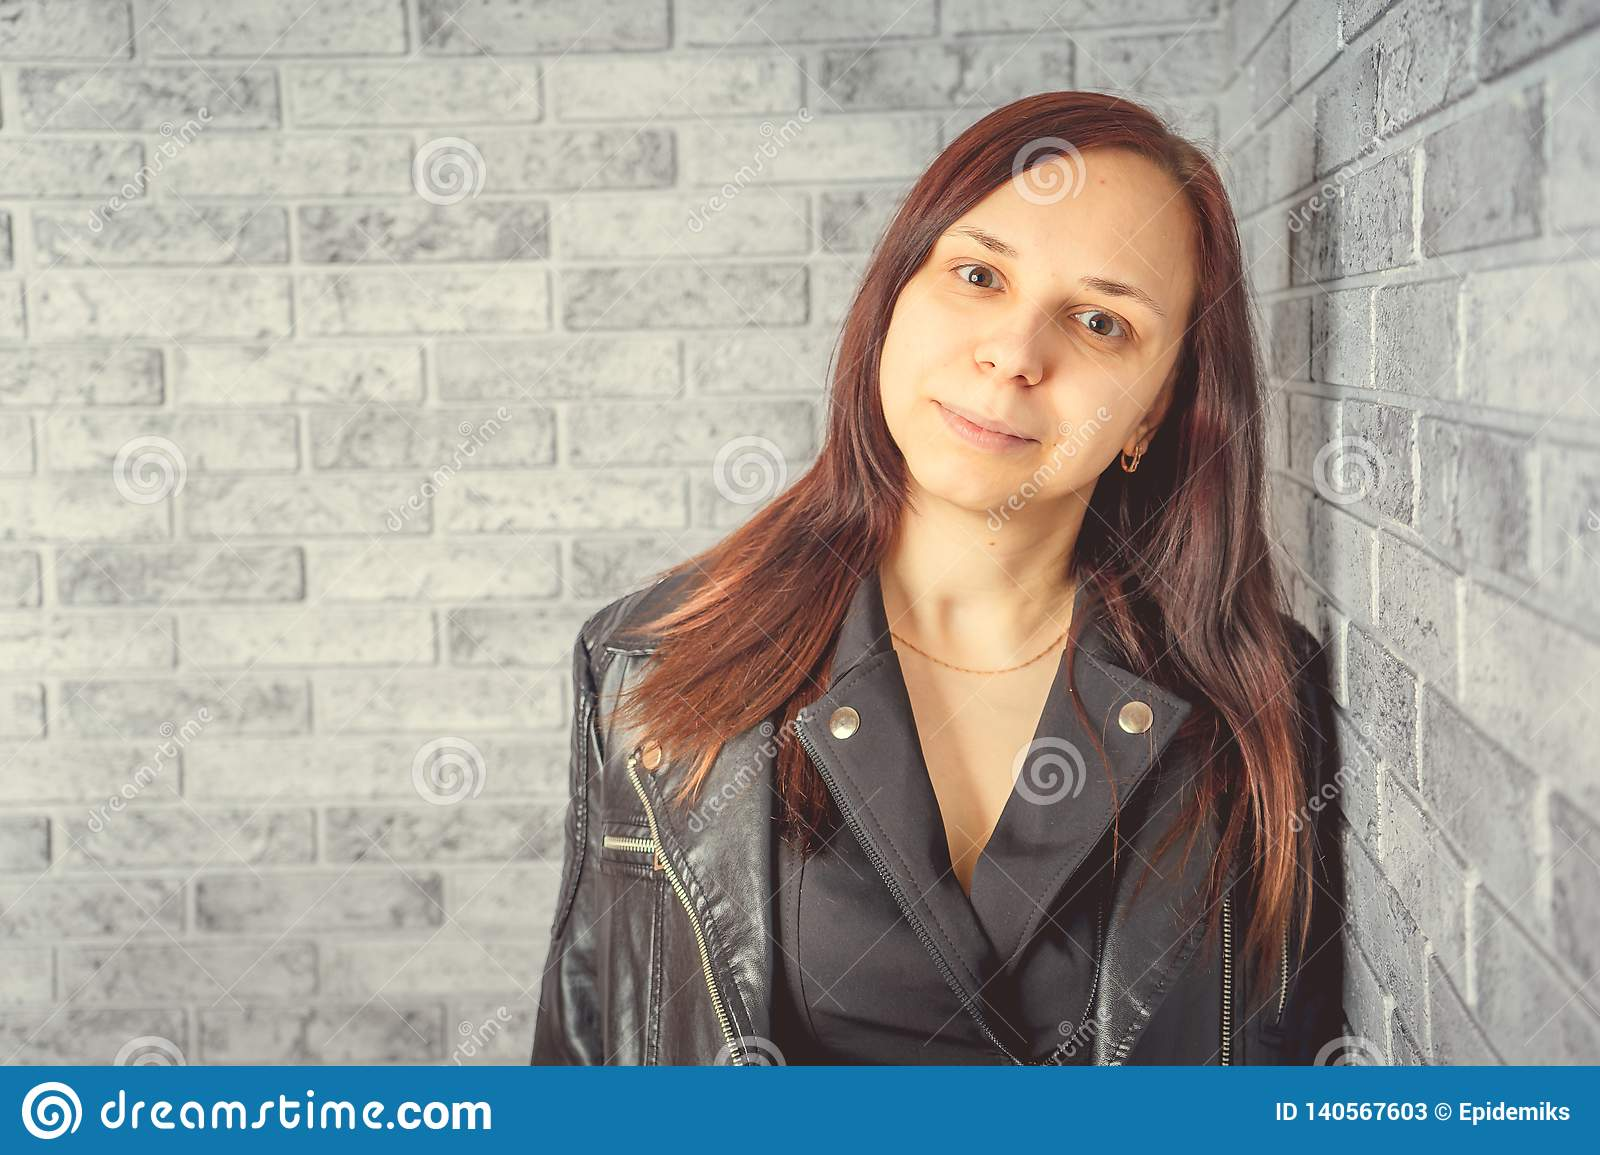 Portrait of a young girl without makeup on her face in a black jacket against a gray brick wall.